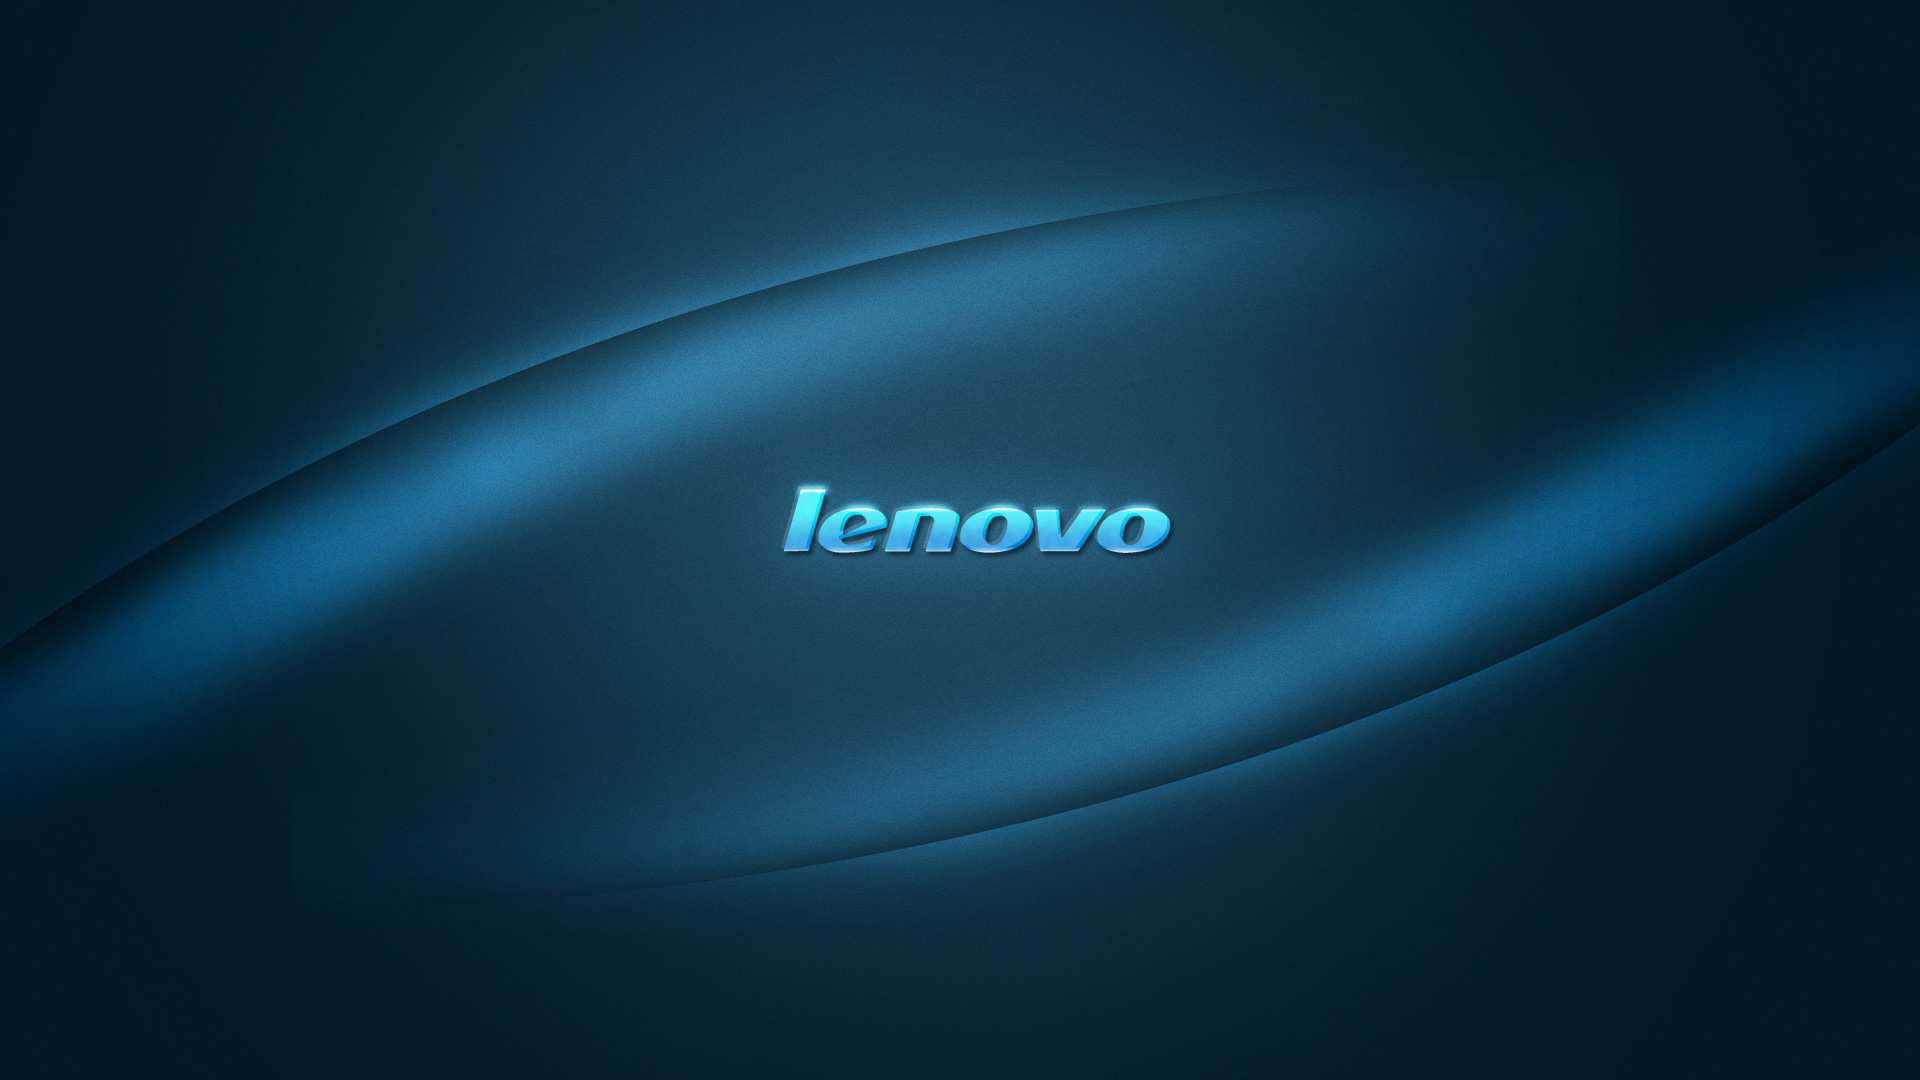 Awesome Lenovo Wallpaper